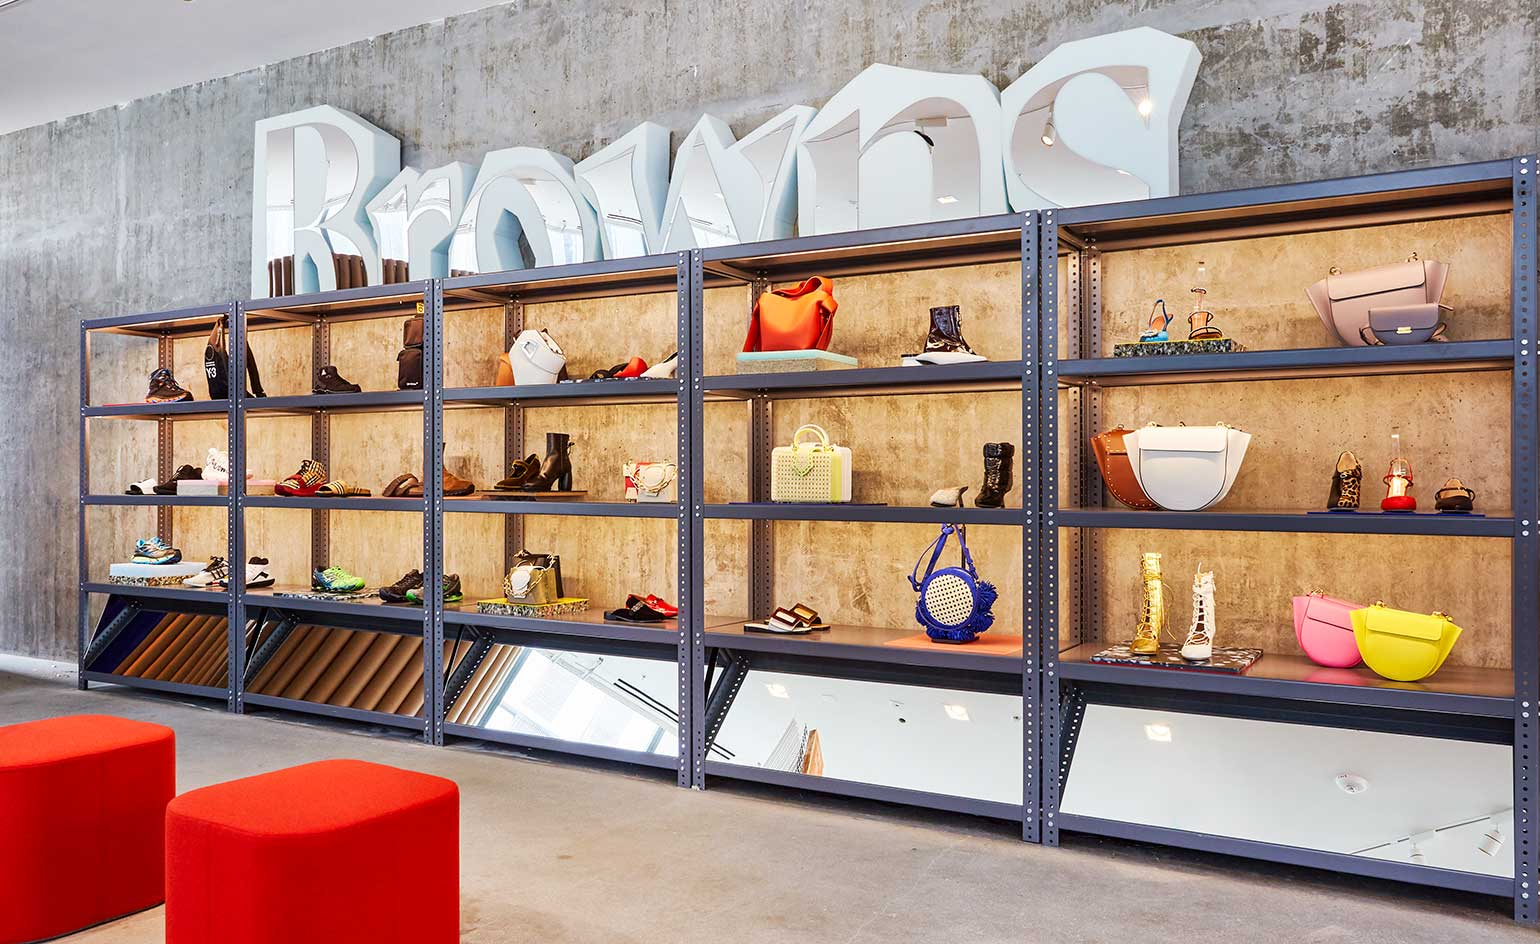 Browns' pop-up space in Fred Segal on Sunset Boulevard, designed by Brinkworth